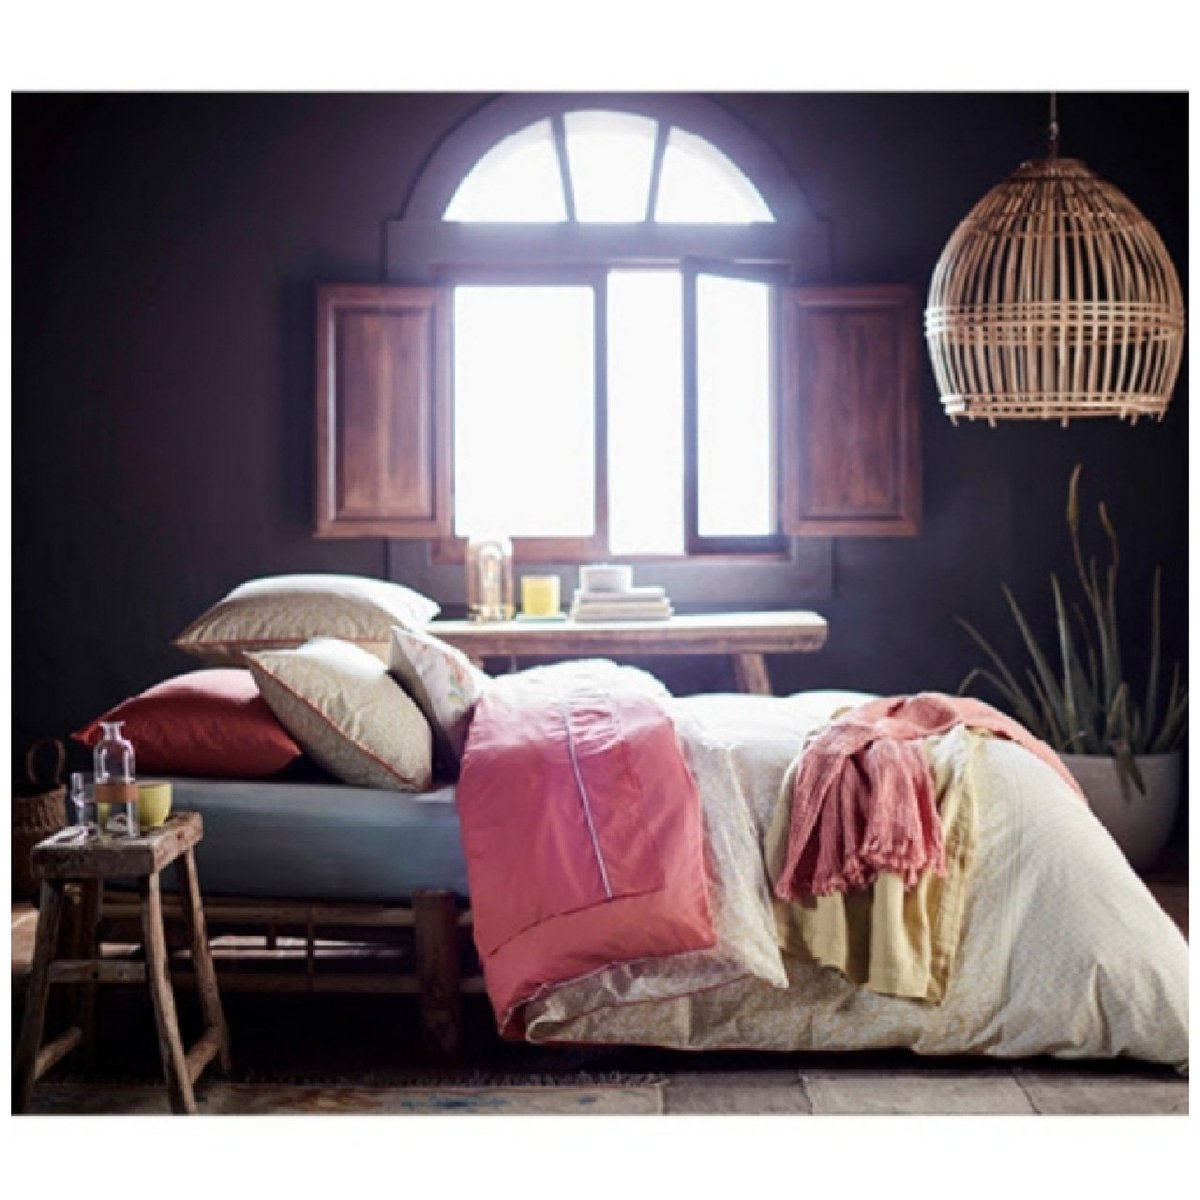 Zara Home Teppich zarahome zara home zarahome the of zara home is located in a